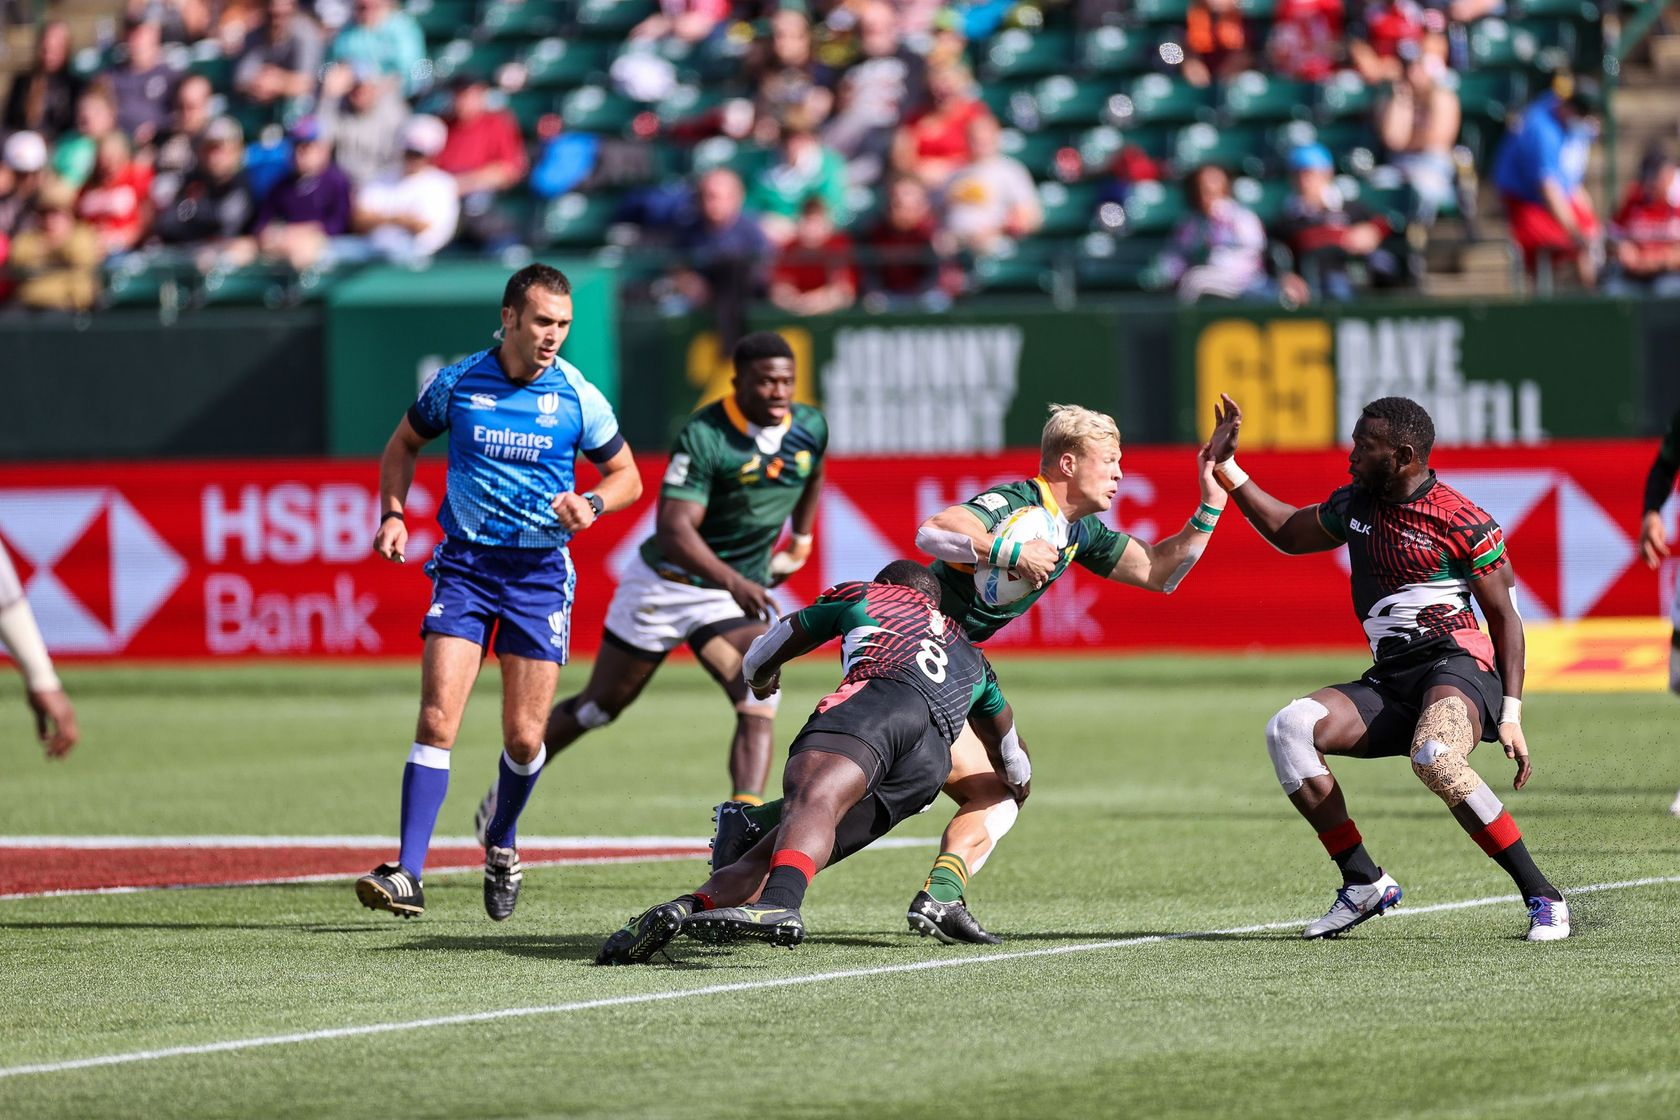 Everything you need to know about the HSBC World Rugby Sevens Series 2022